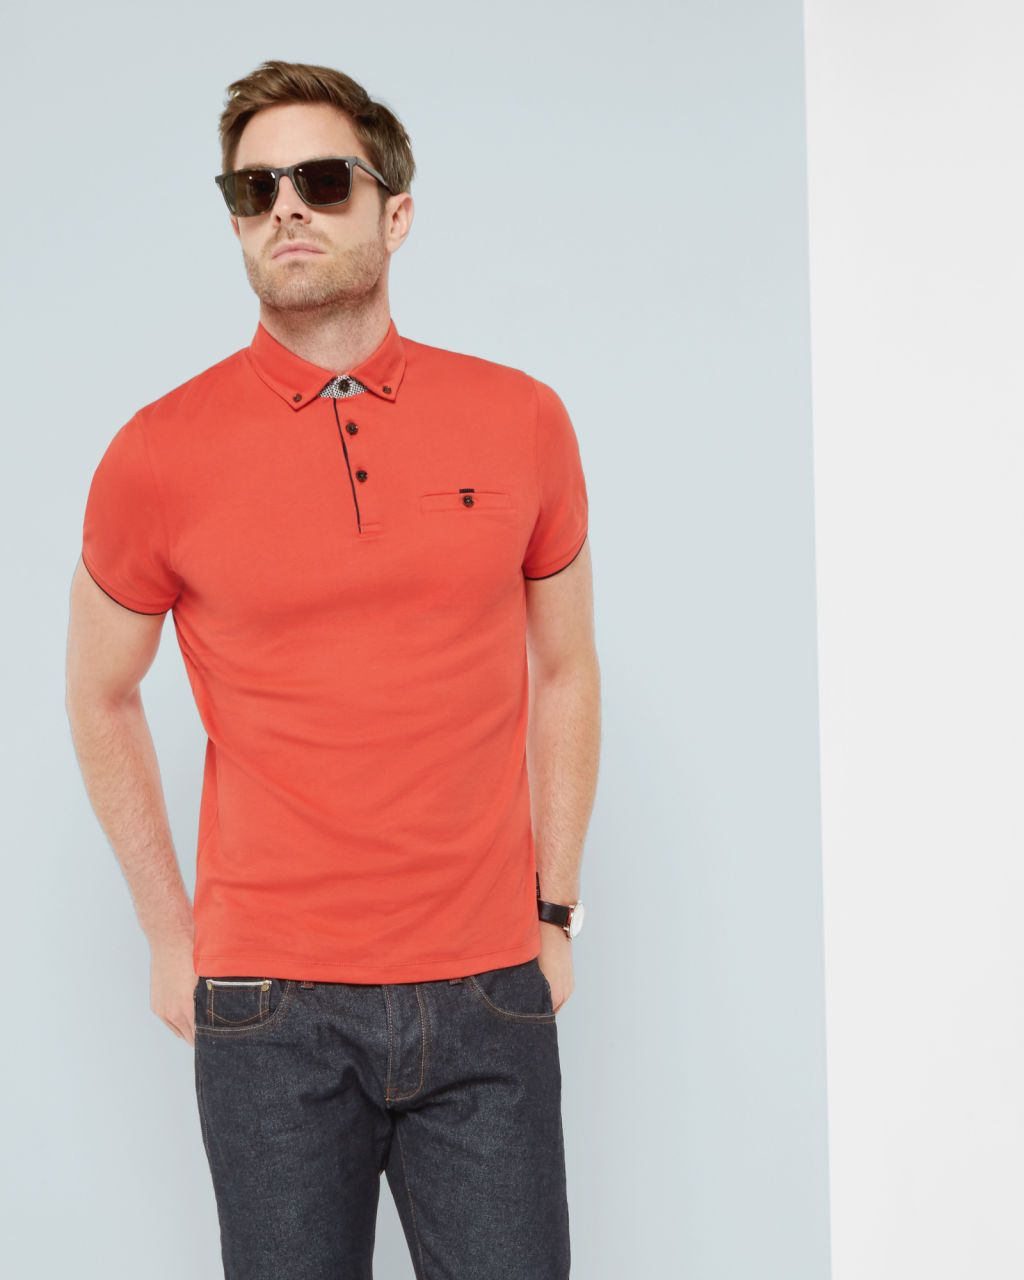 ed1883fa2 Jersey polo shirt - Coral | Tops & T-shirts | Ted Baker | Men's ...